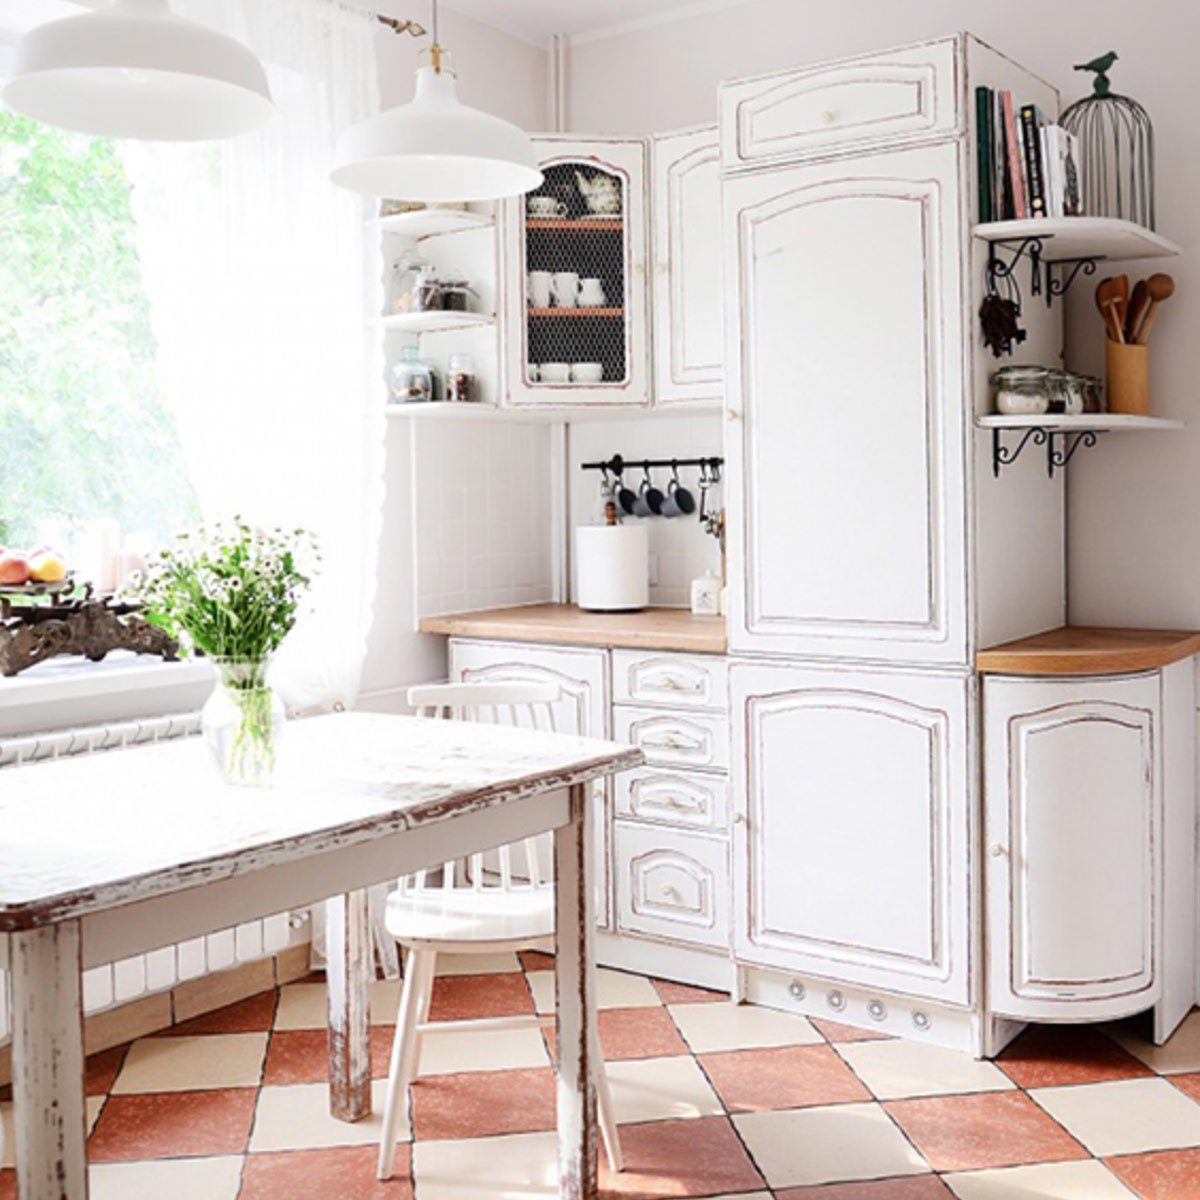 Can You Paint Kitchen Cabinets With Chalk Paint: Here's How To Chalk Paint Cabinets